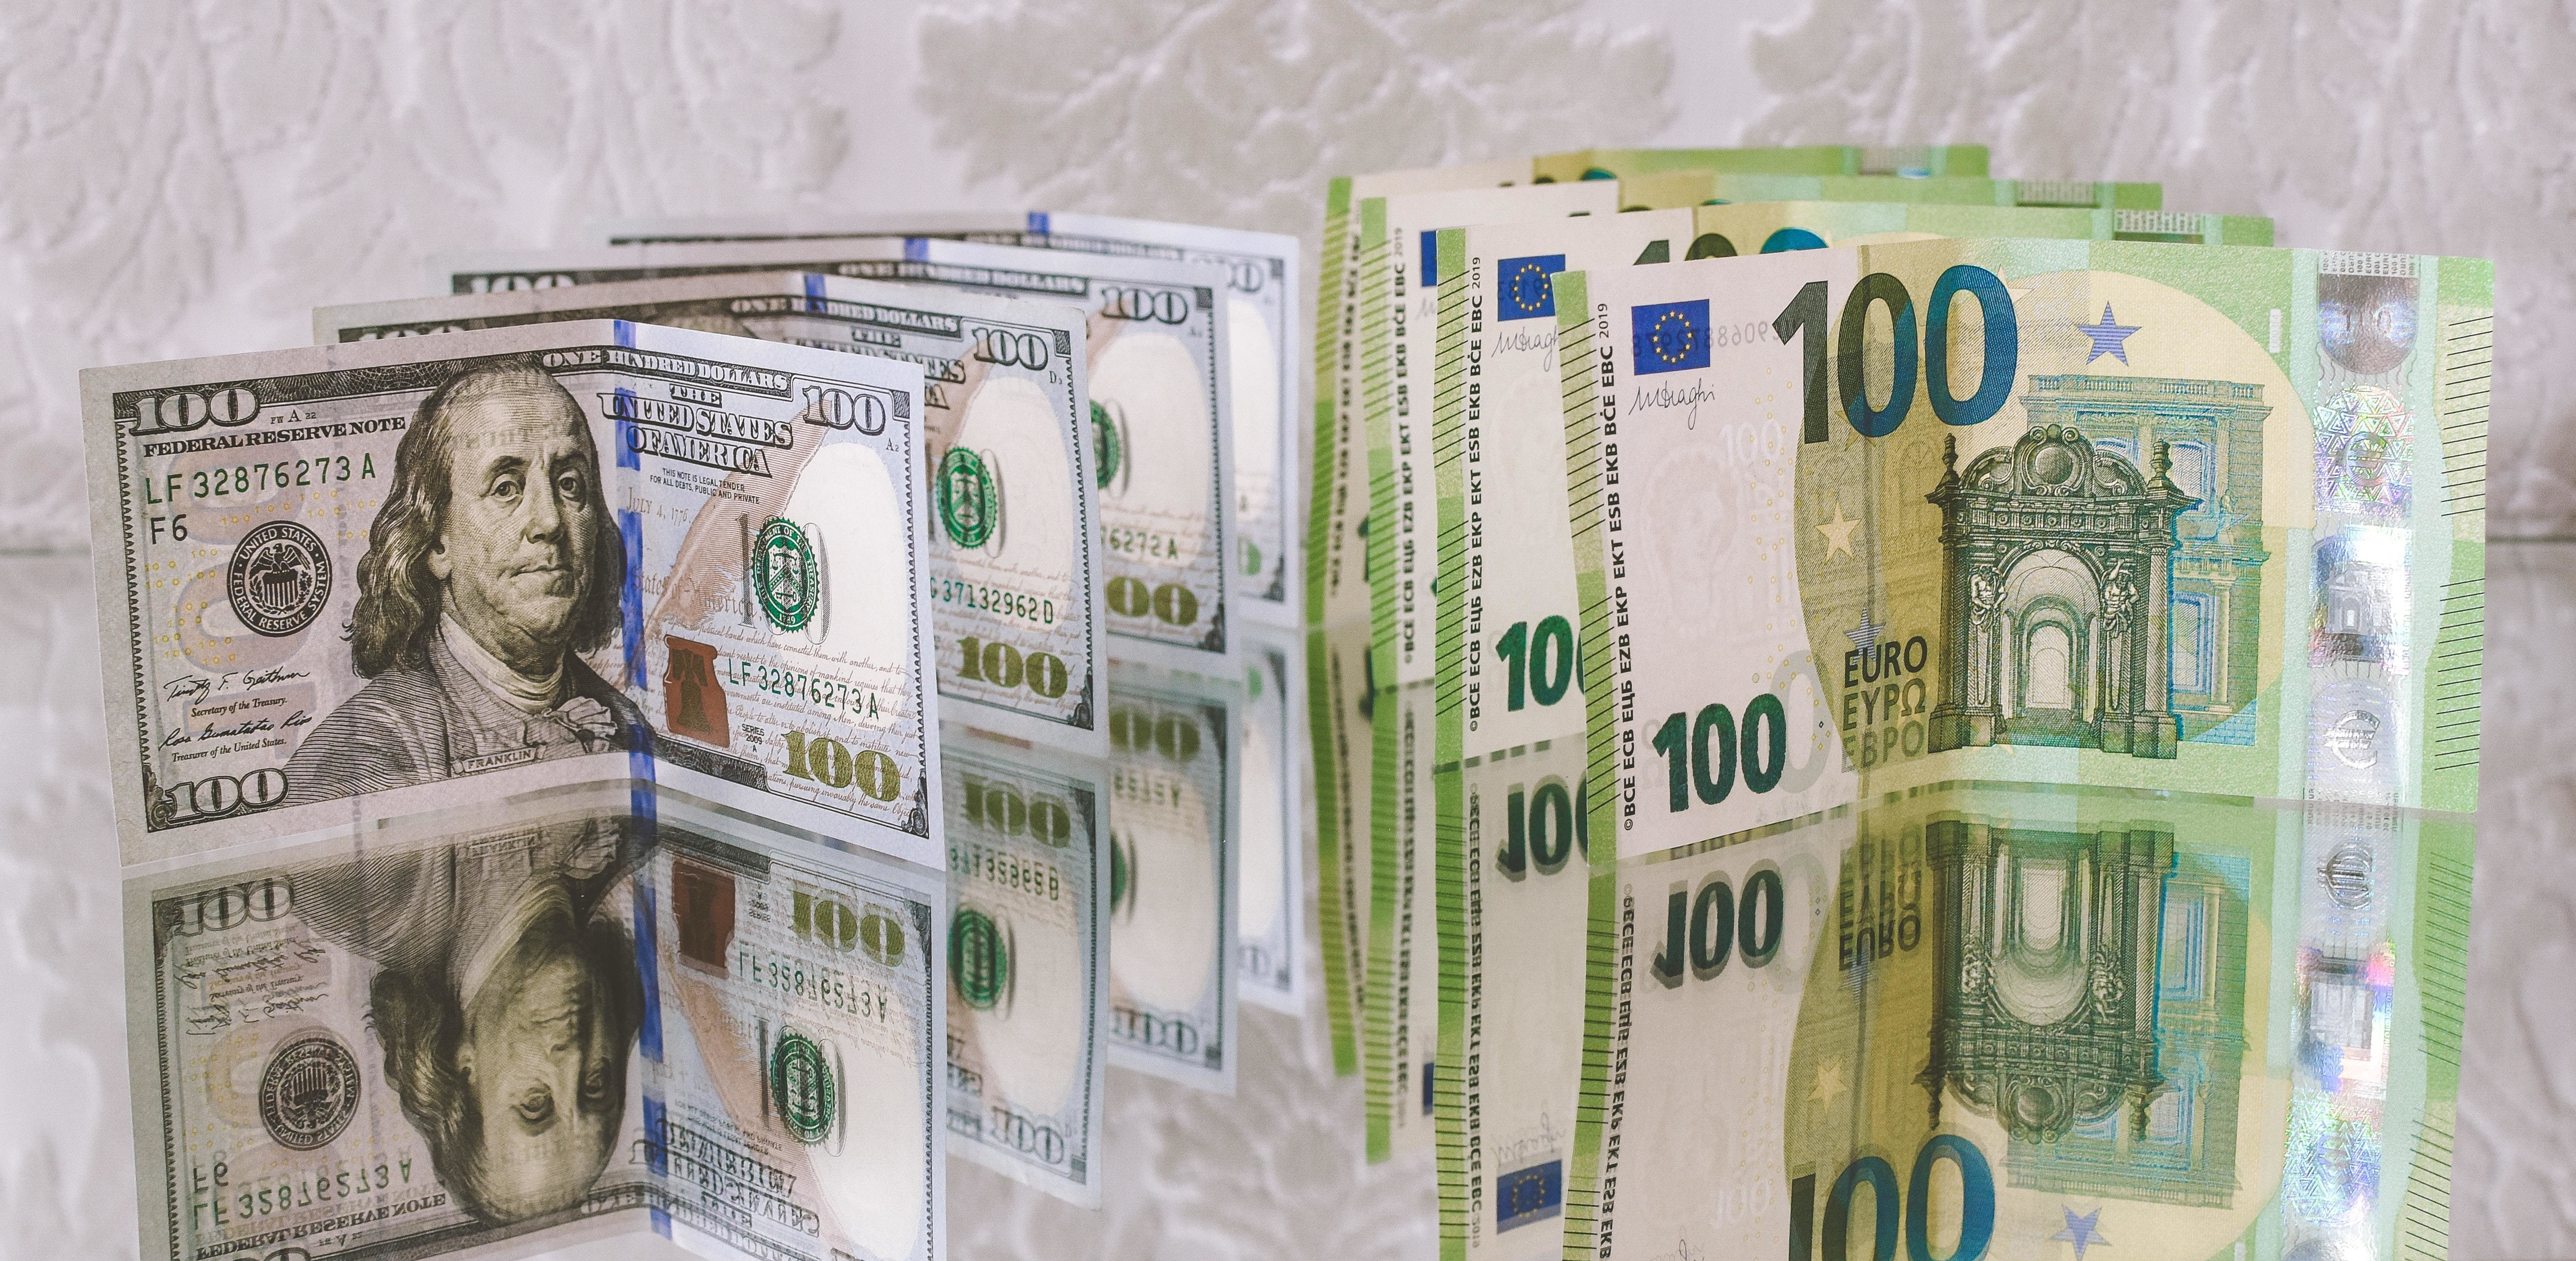 Dollar bills and euro notes lined up symbolising economic growth.